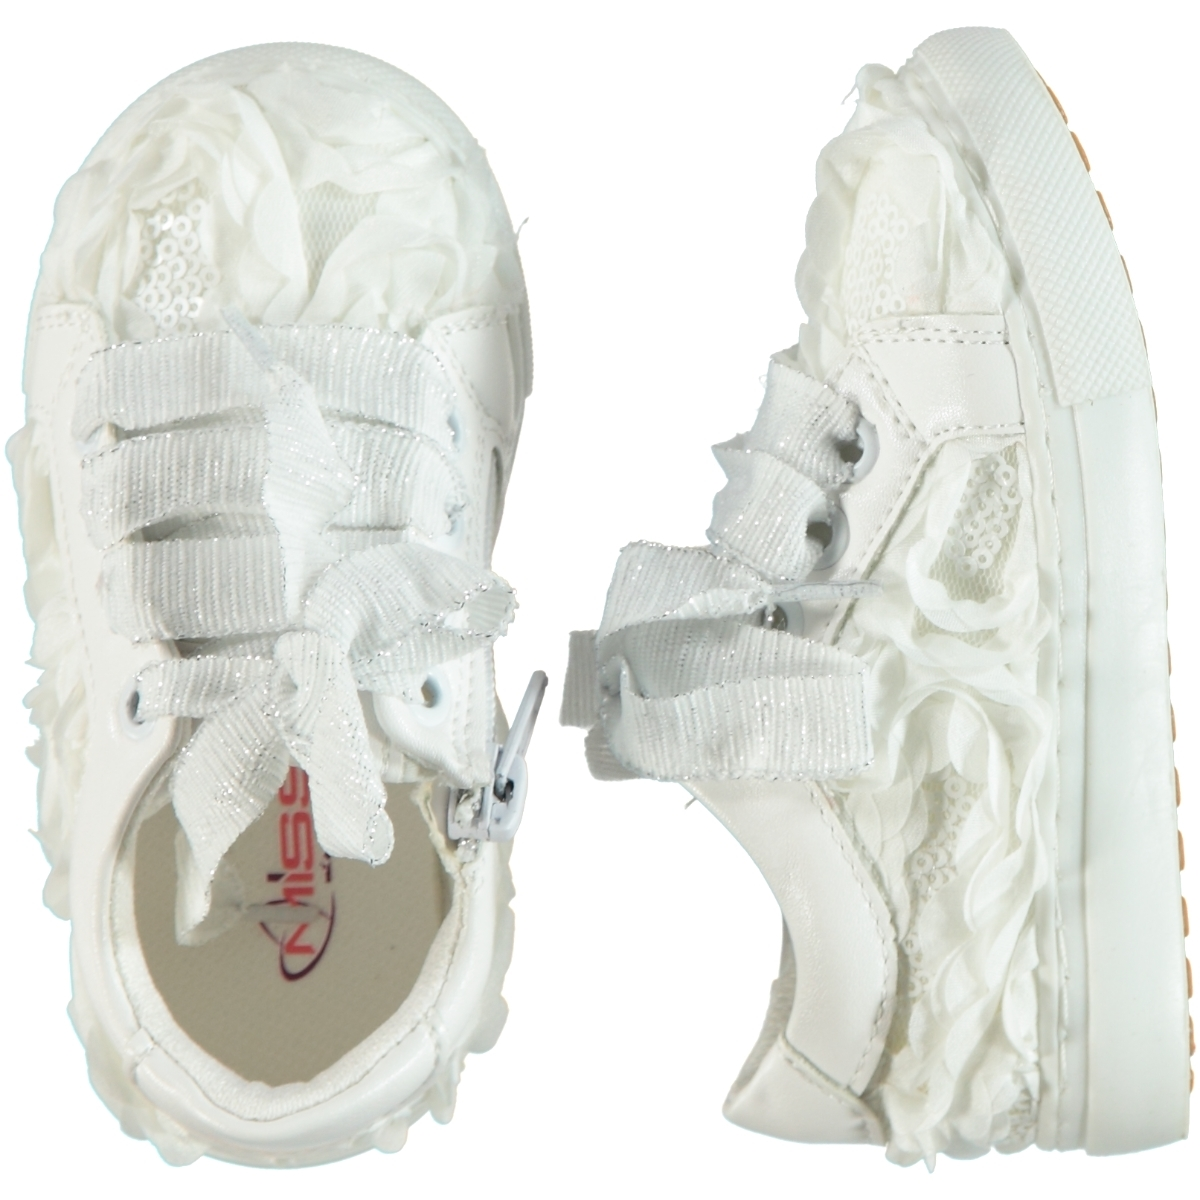 Missiva White Baby Shoes 21-25 Number